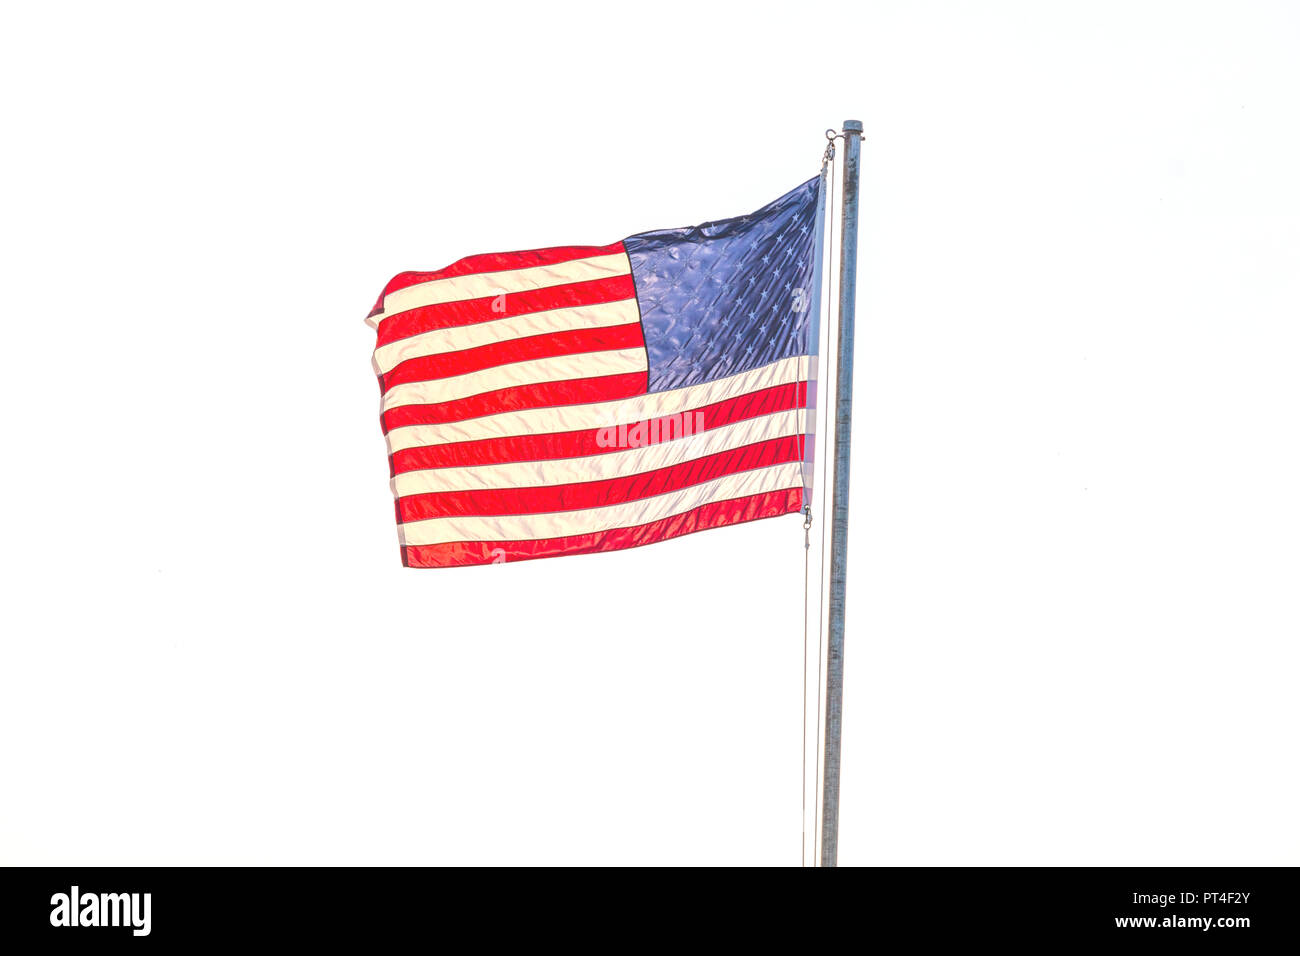 United States flag flying on a flag pole aganist a white background - Stock Image